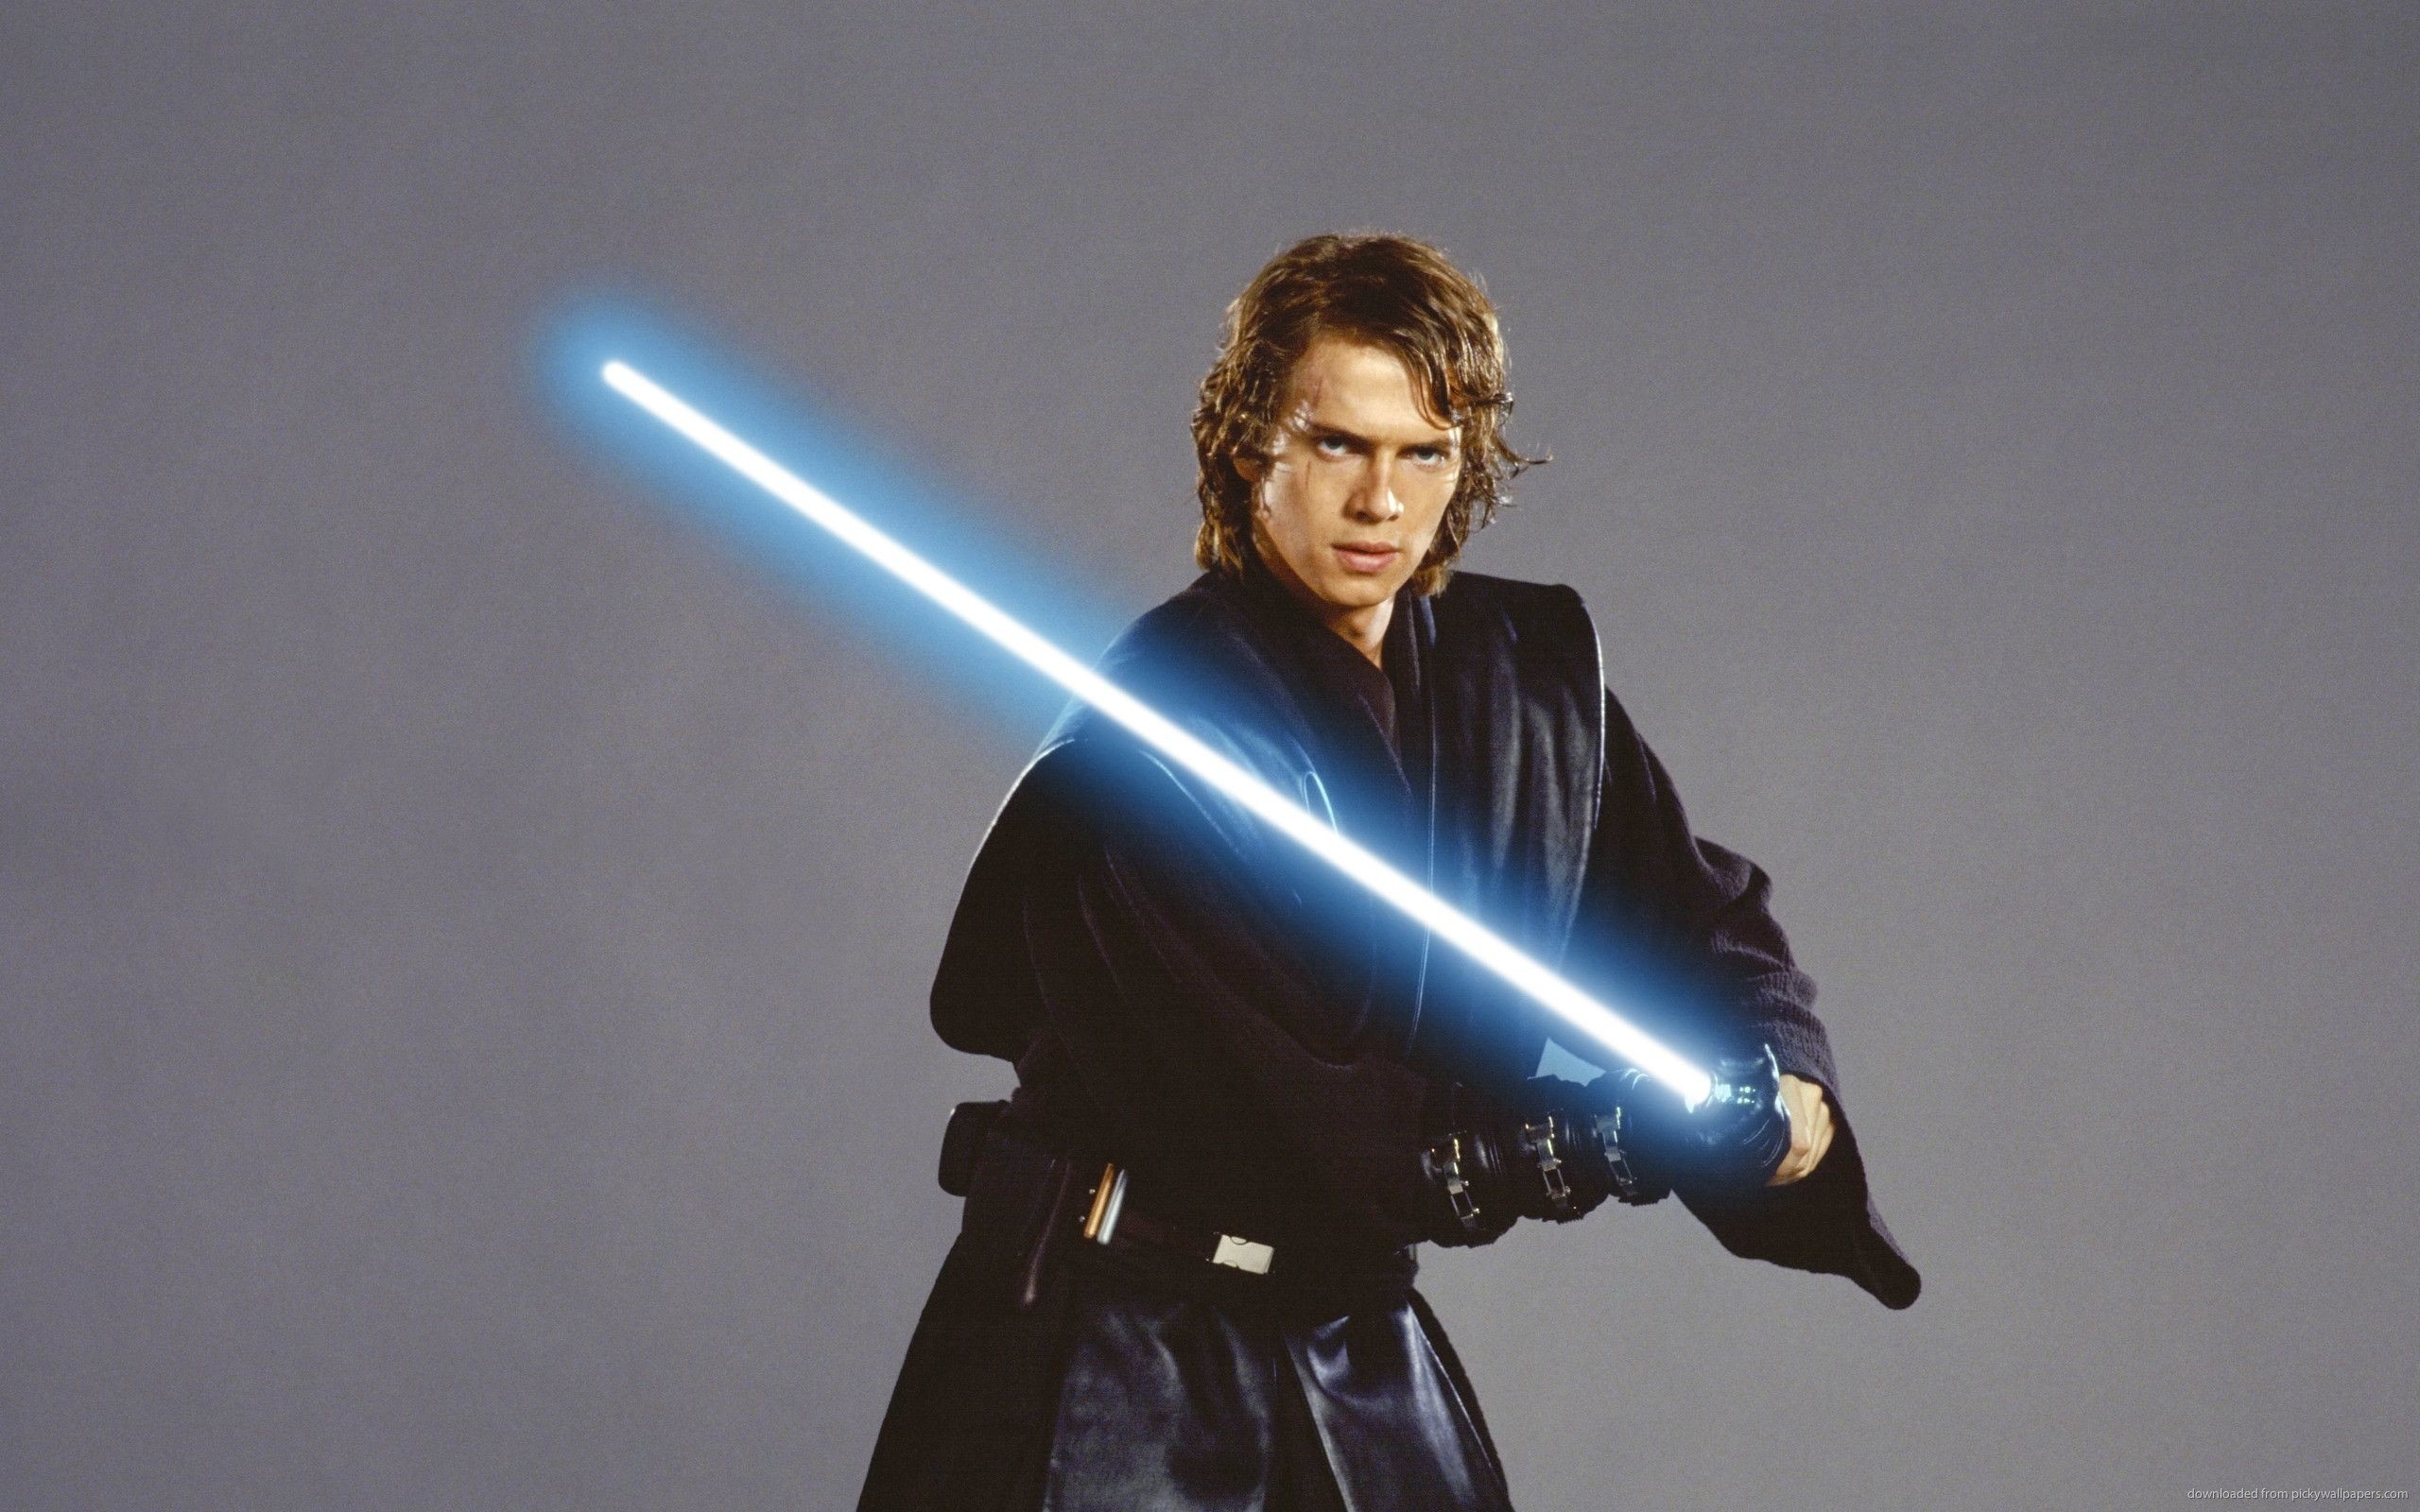 star wars anakin skywalker wallpaper (75+ images)